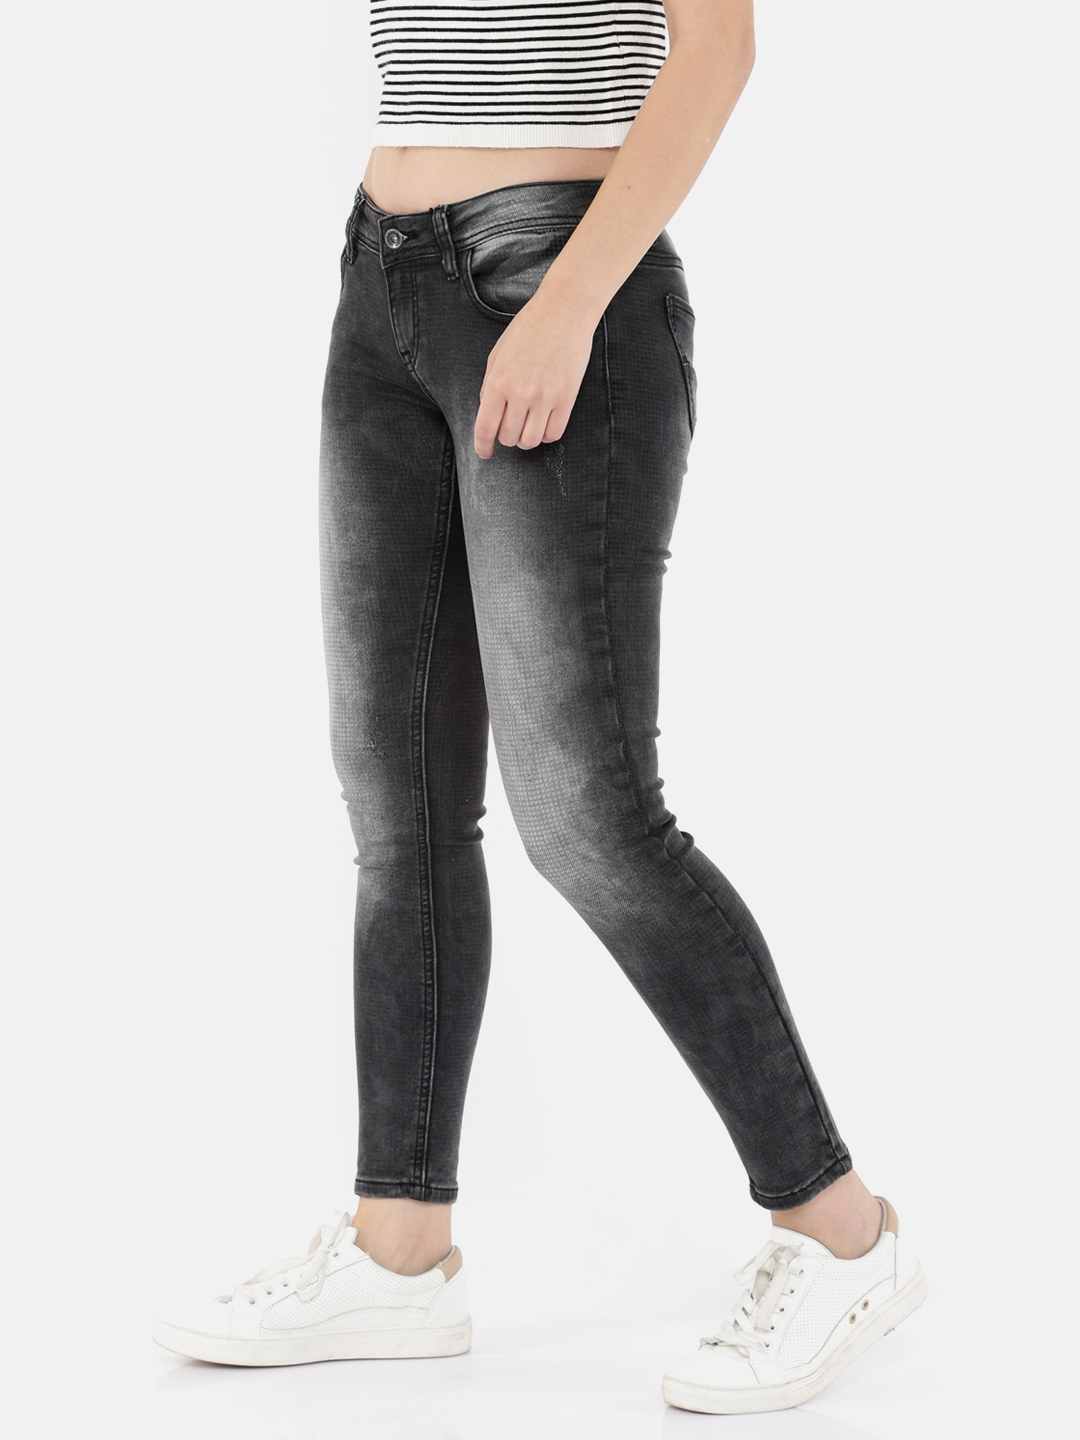 Buy Deal Jeans Women Grey Skinny Fit Mid Rise Low Distress